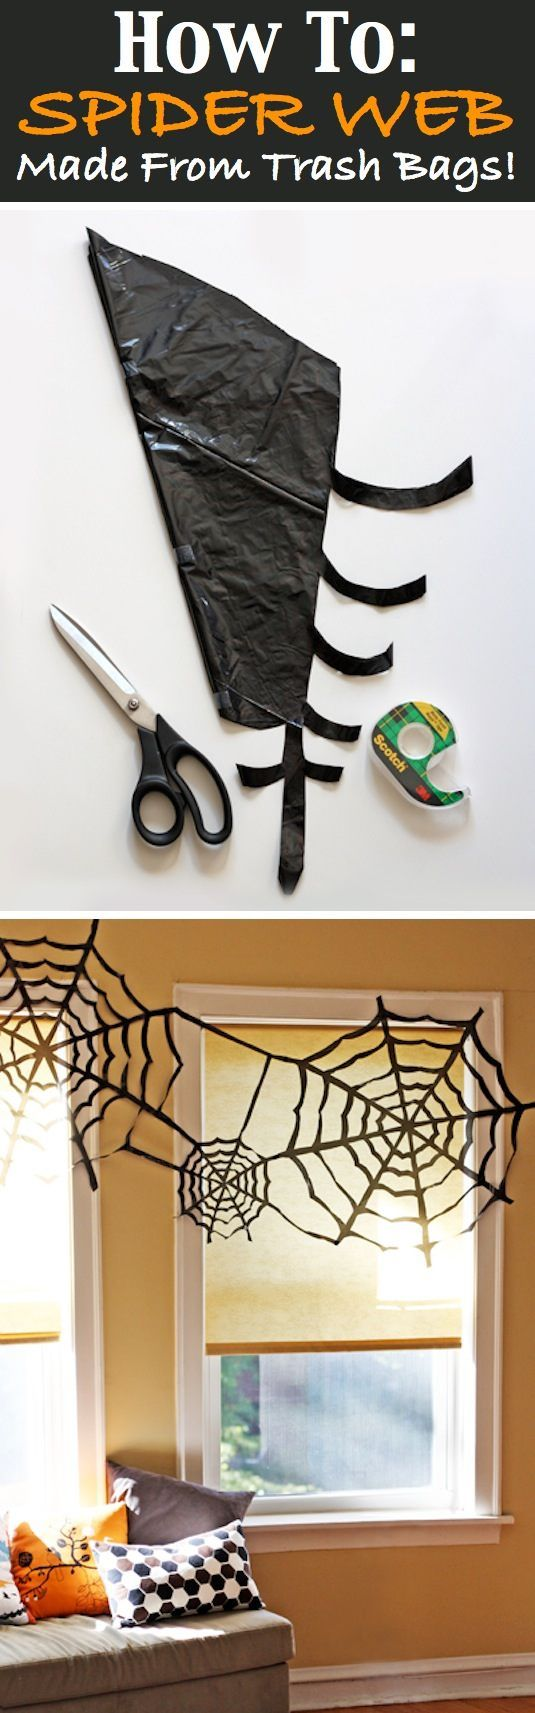 16 Easy Awesome Homemade Halloween Decorations Homemade